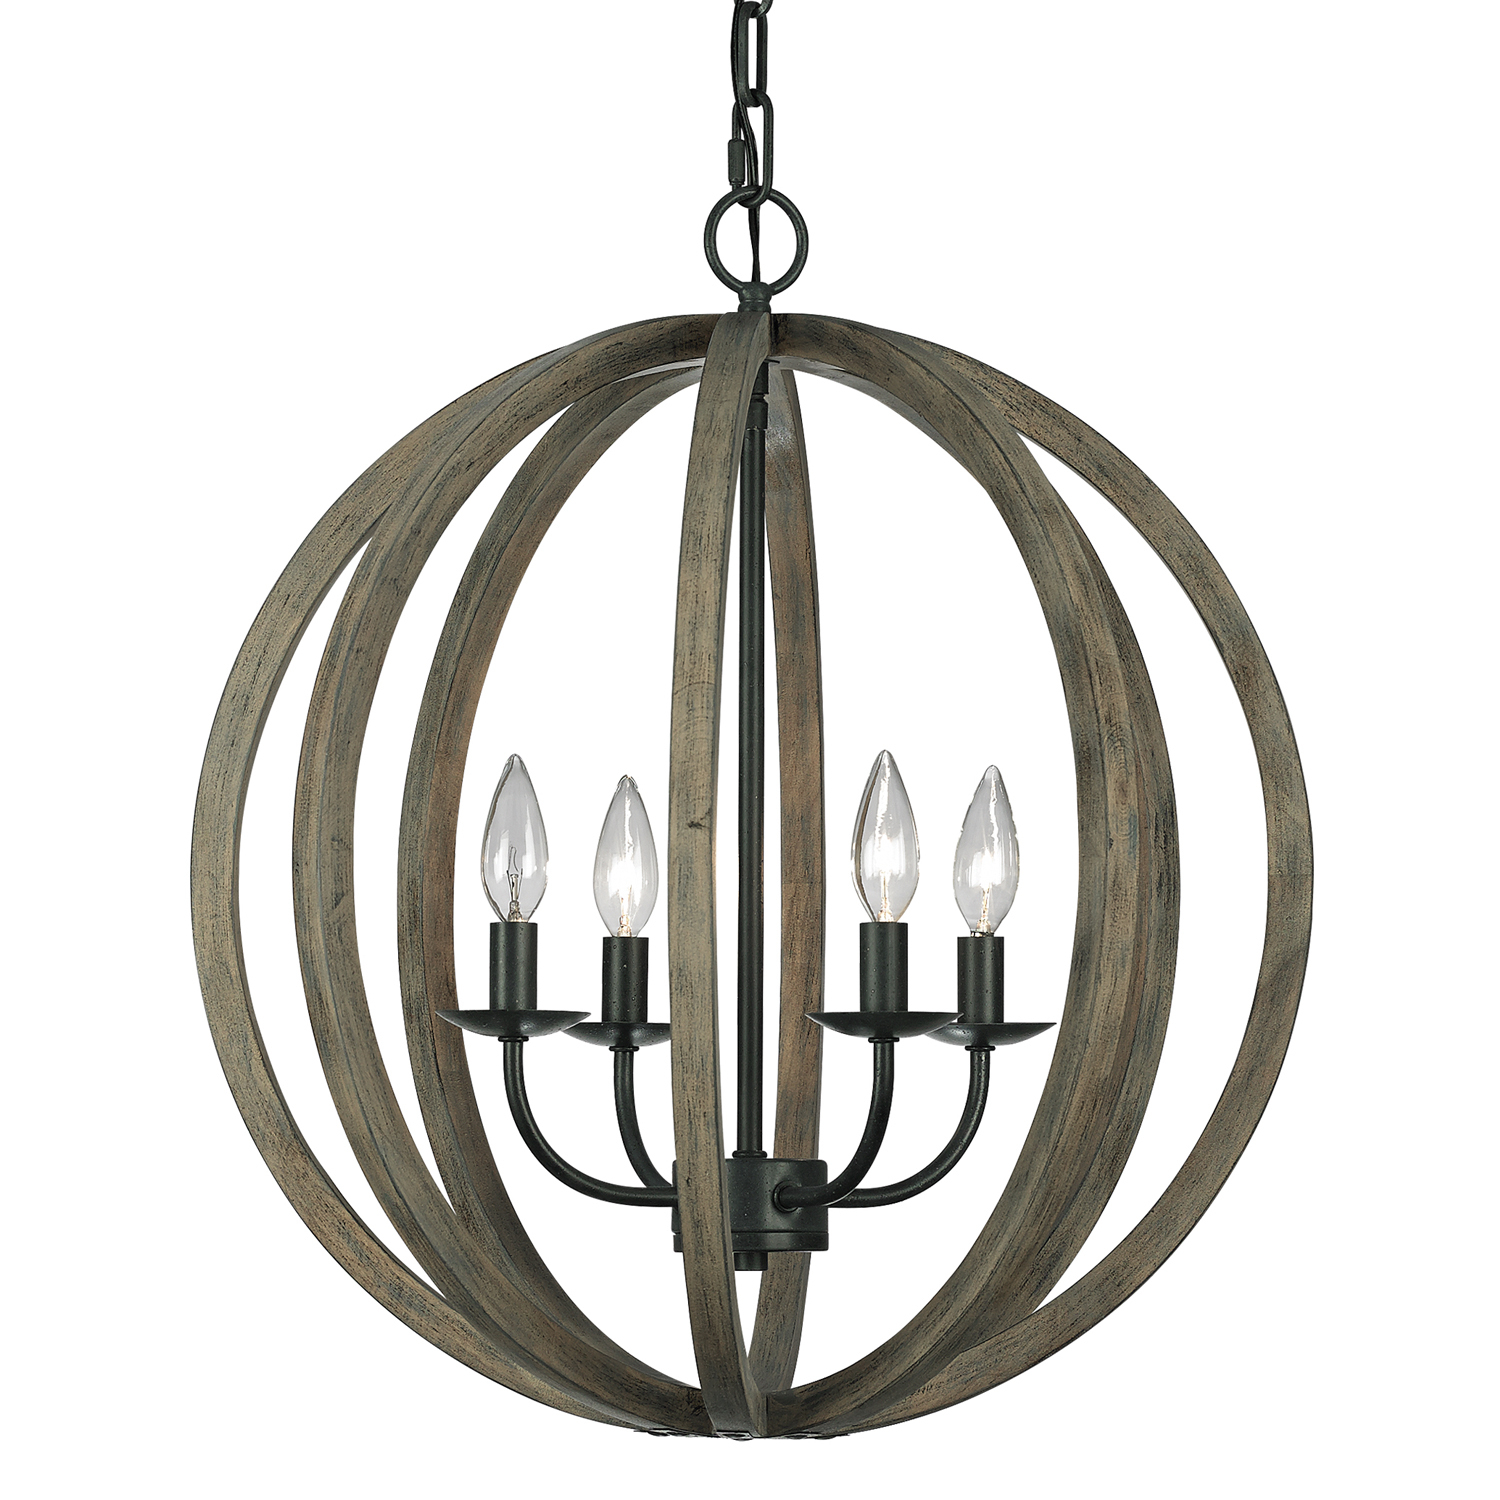 Candelabra Home Allier Pendant 5 Light | Products In 2019 Pertaining To Ricciardo 4 Light Globe Chandeliers (View 10 of 30)